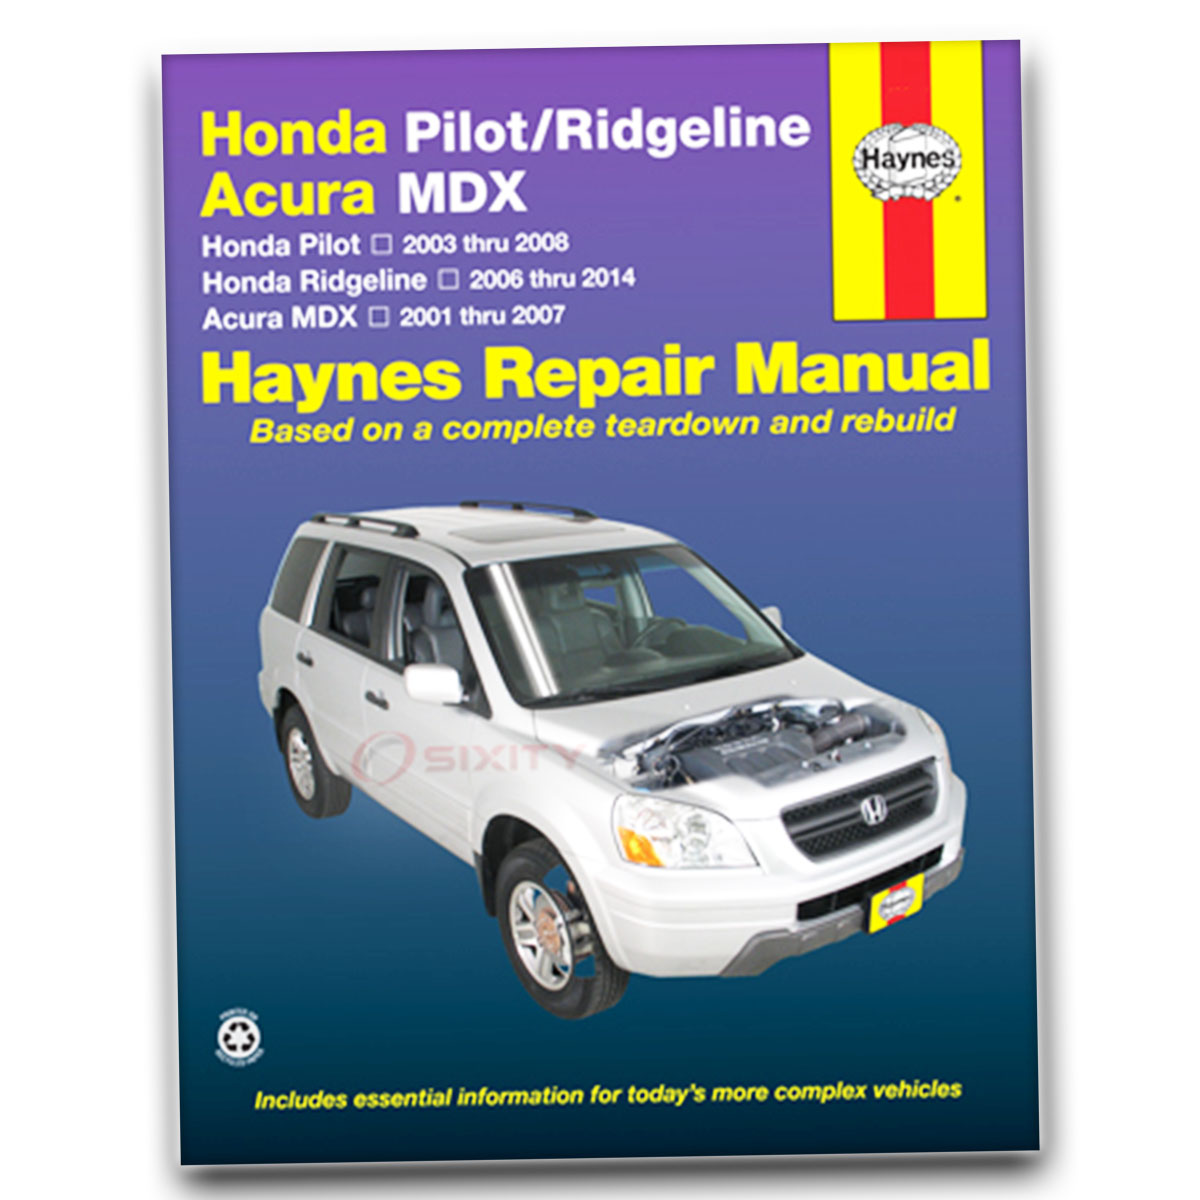 Haynes Repair Manual for Acura MDX Base Touring Shop Service Garage Book me